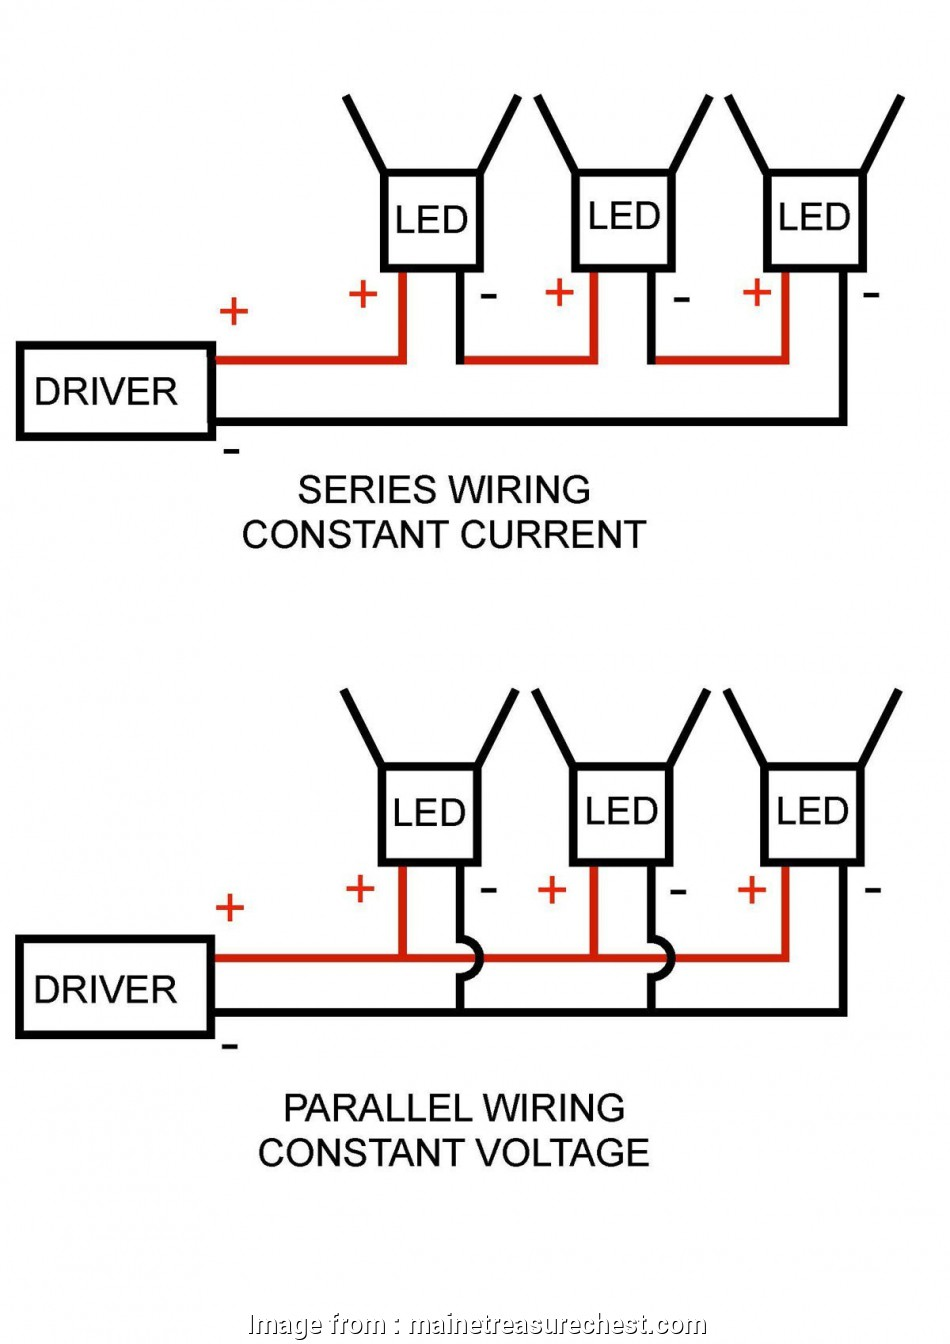 Wiring Recessed Lights Parallel Diagram Professional Wiring ... on nissan engine diagram, nissan body diagram, nissan main fuse, nissan battery diagram, nissan chassis diagram, nissan repair guide, nissan ignition key, nissan suspension diagram, nissan fuel system diagram, nissan electrical diagrams, nissan schematic diagram, nissan radiator diagram, nissan diesel conversion, nissan brakes diagram, nissan ignition resistor, nissan repair diagrams, nissan fuel pump, nissan transaxle, nissan wire harness diagram, nissan distributor diagram,